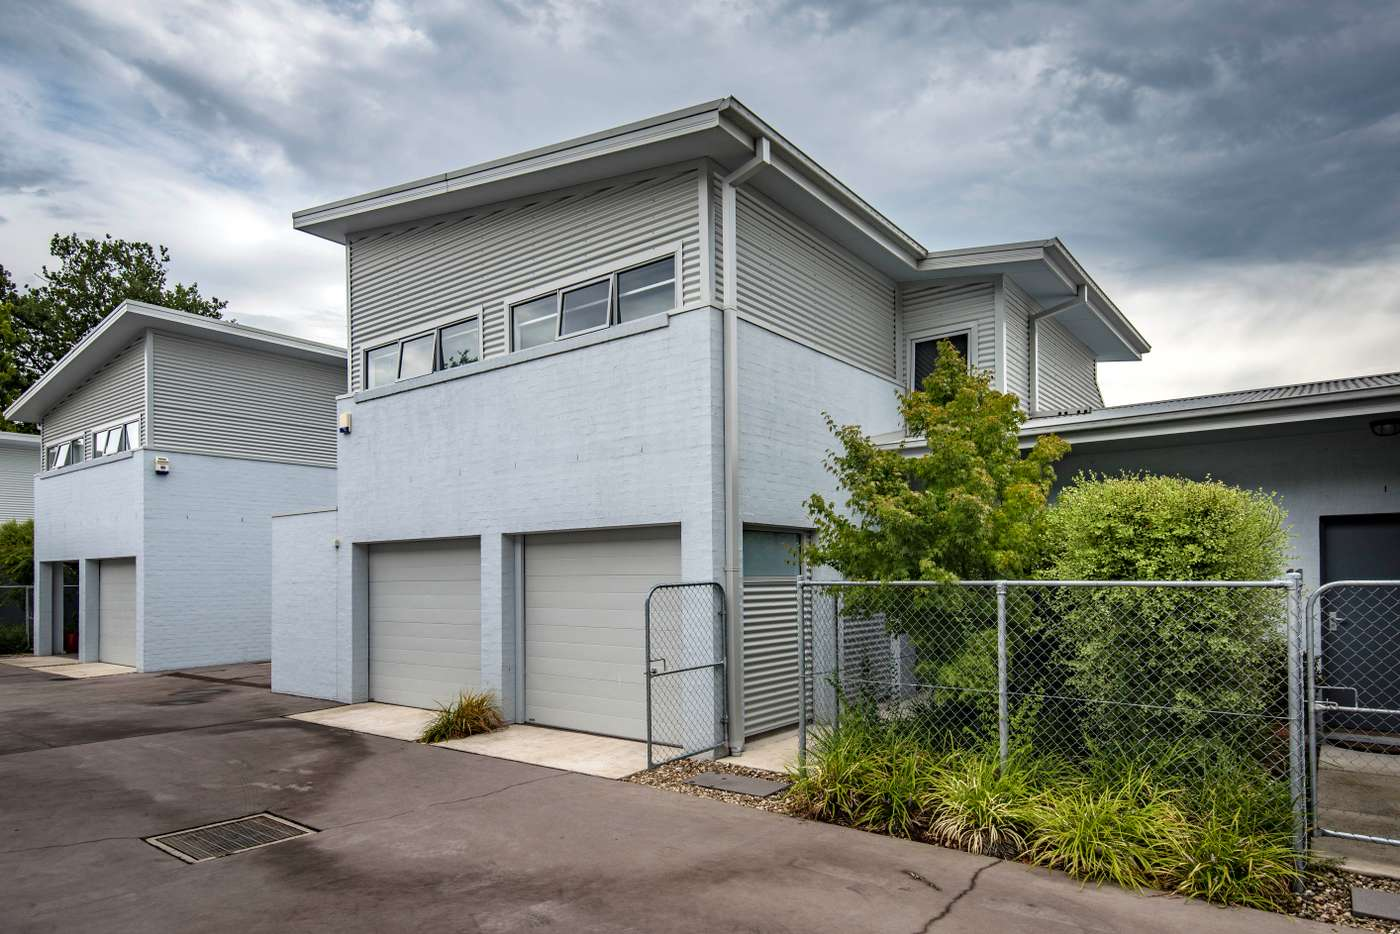 Main view of Homely townhouse listing, 10/25 Macrobertson Street, Mawson ACT 2607